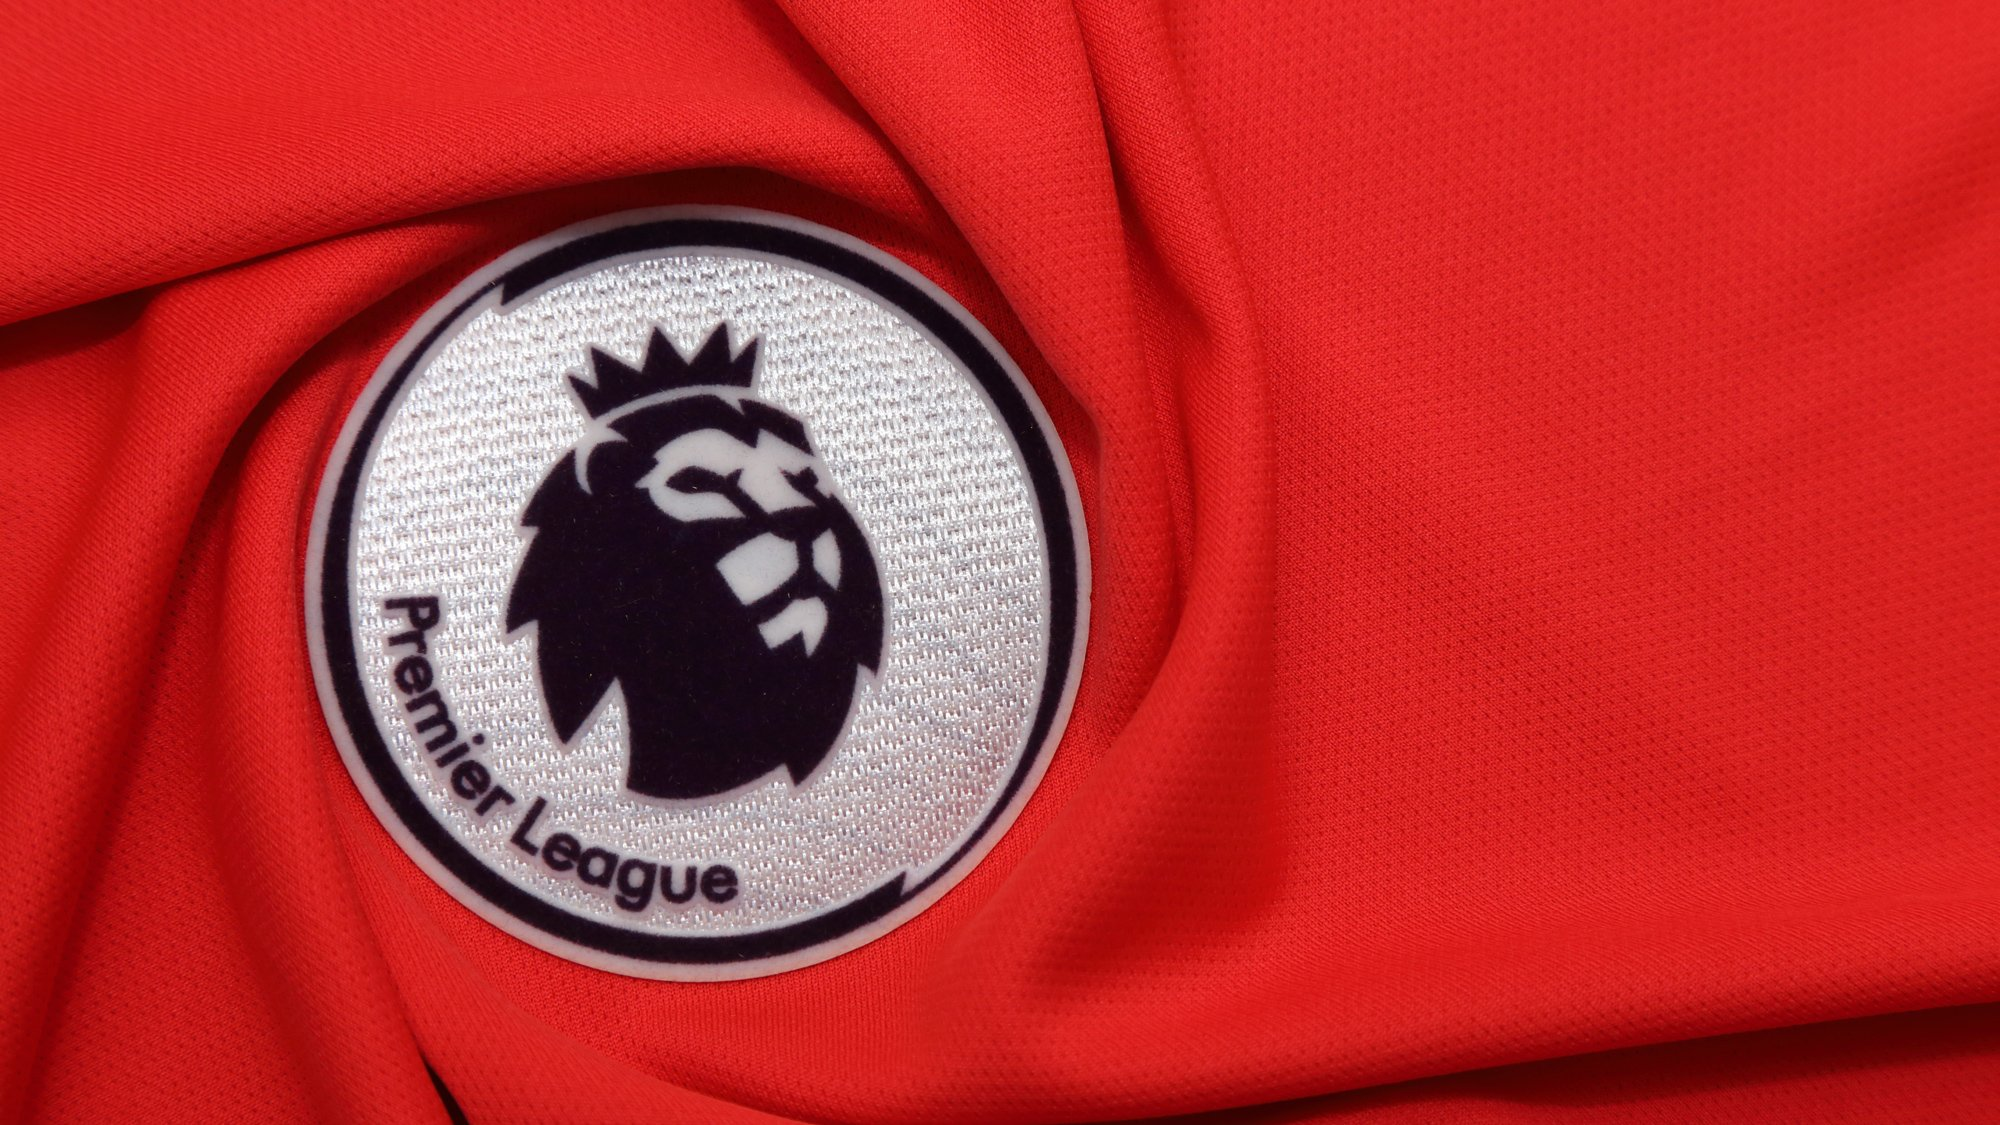 How to watch the Premier League online | Expert Reviews